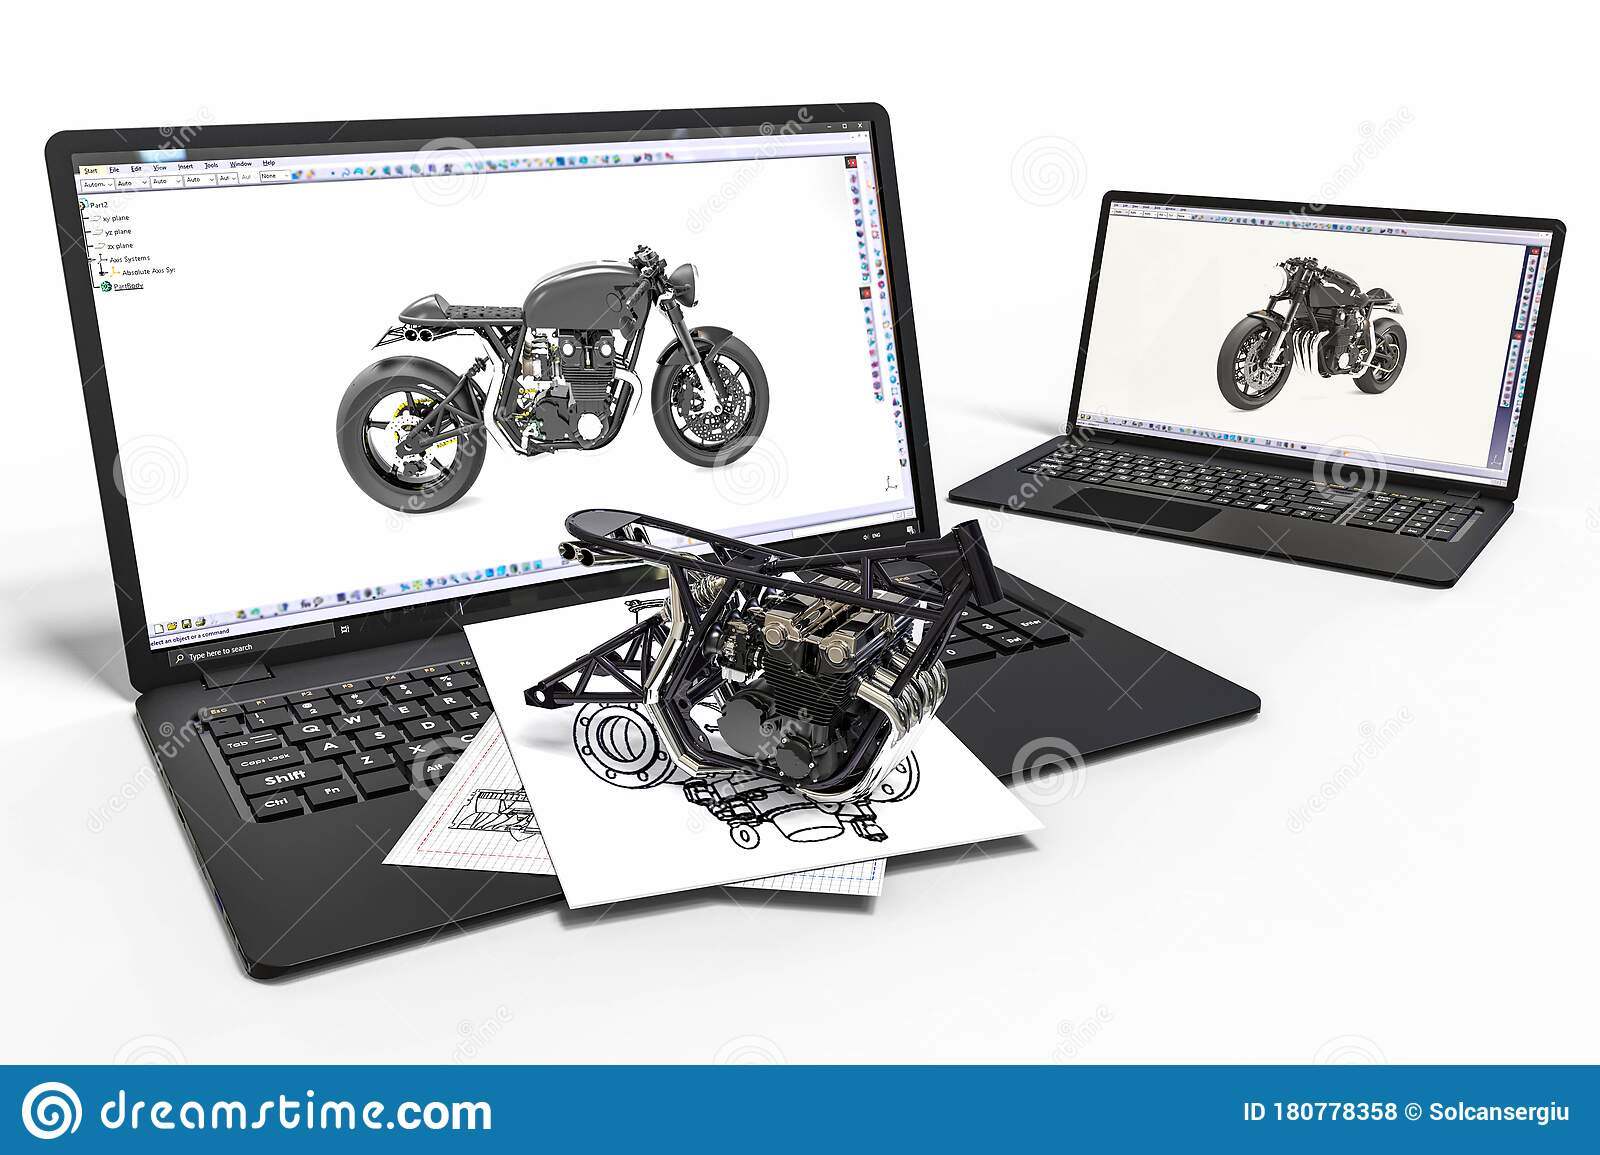 Computer Aided Design With 3d Software Motorcycle Development With The Help Of A Computer Software Stock Illustration Illustration Of Development Drawing 180778358